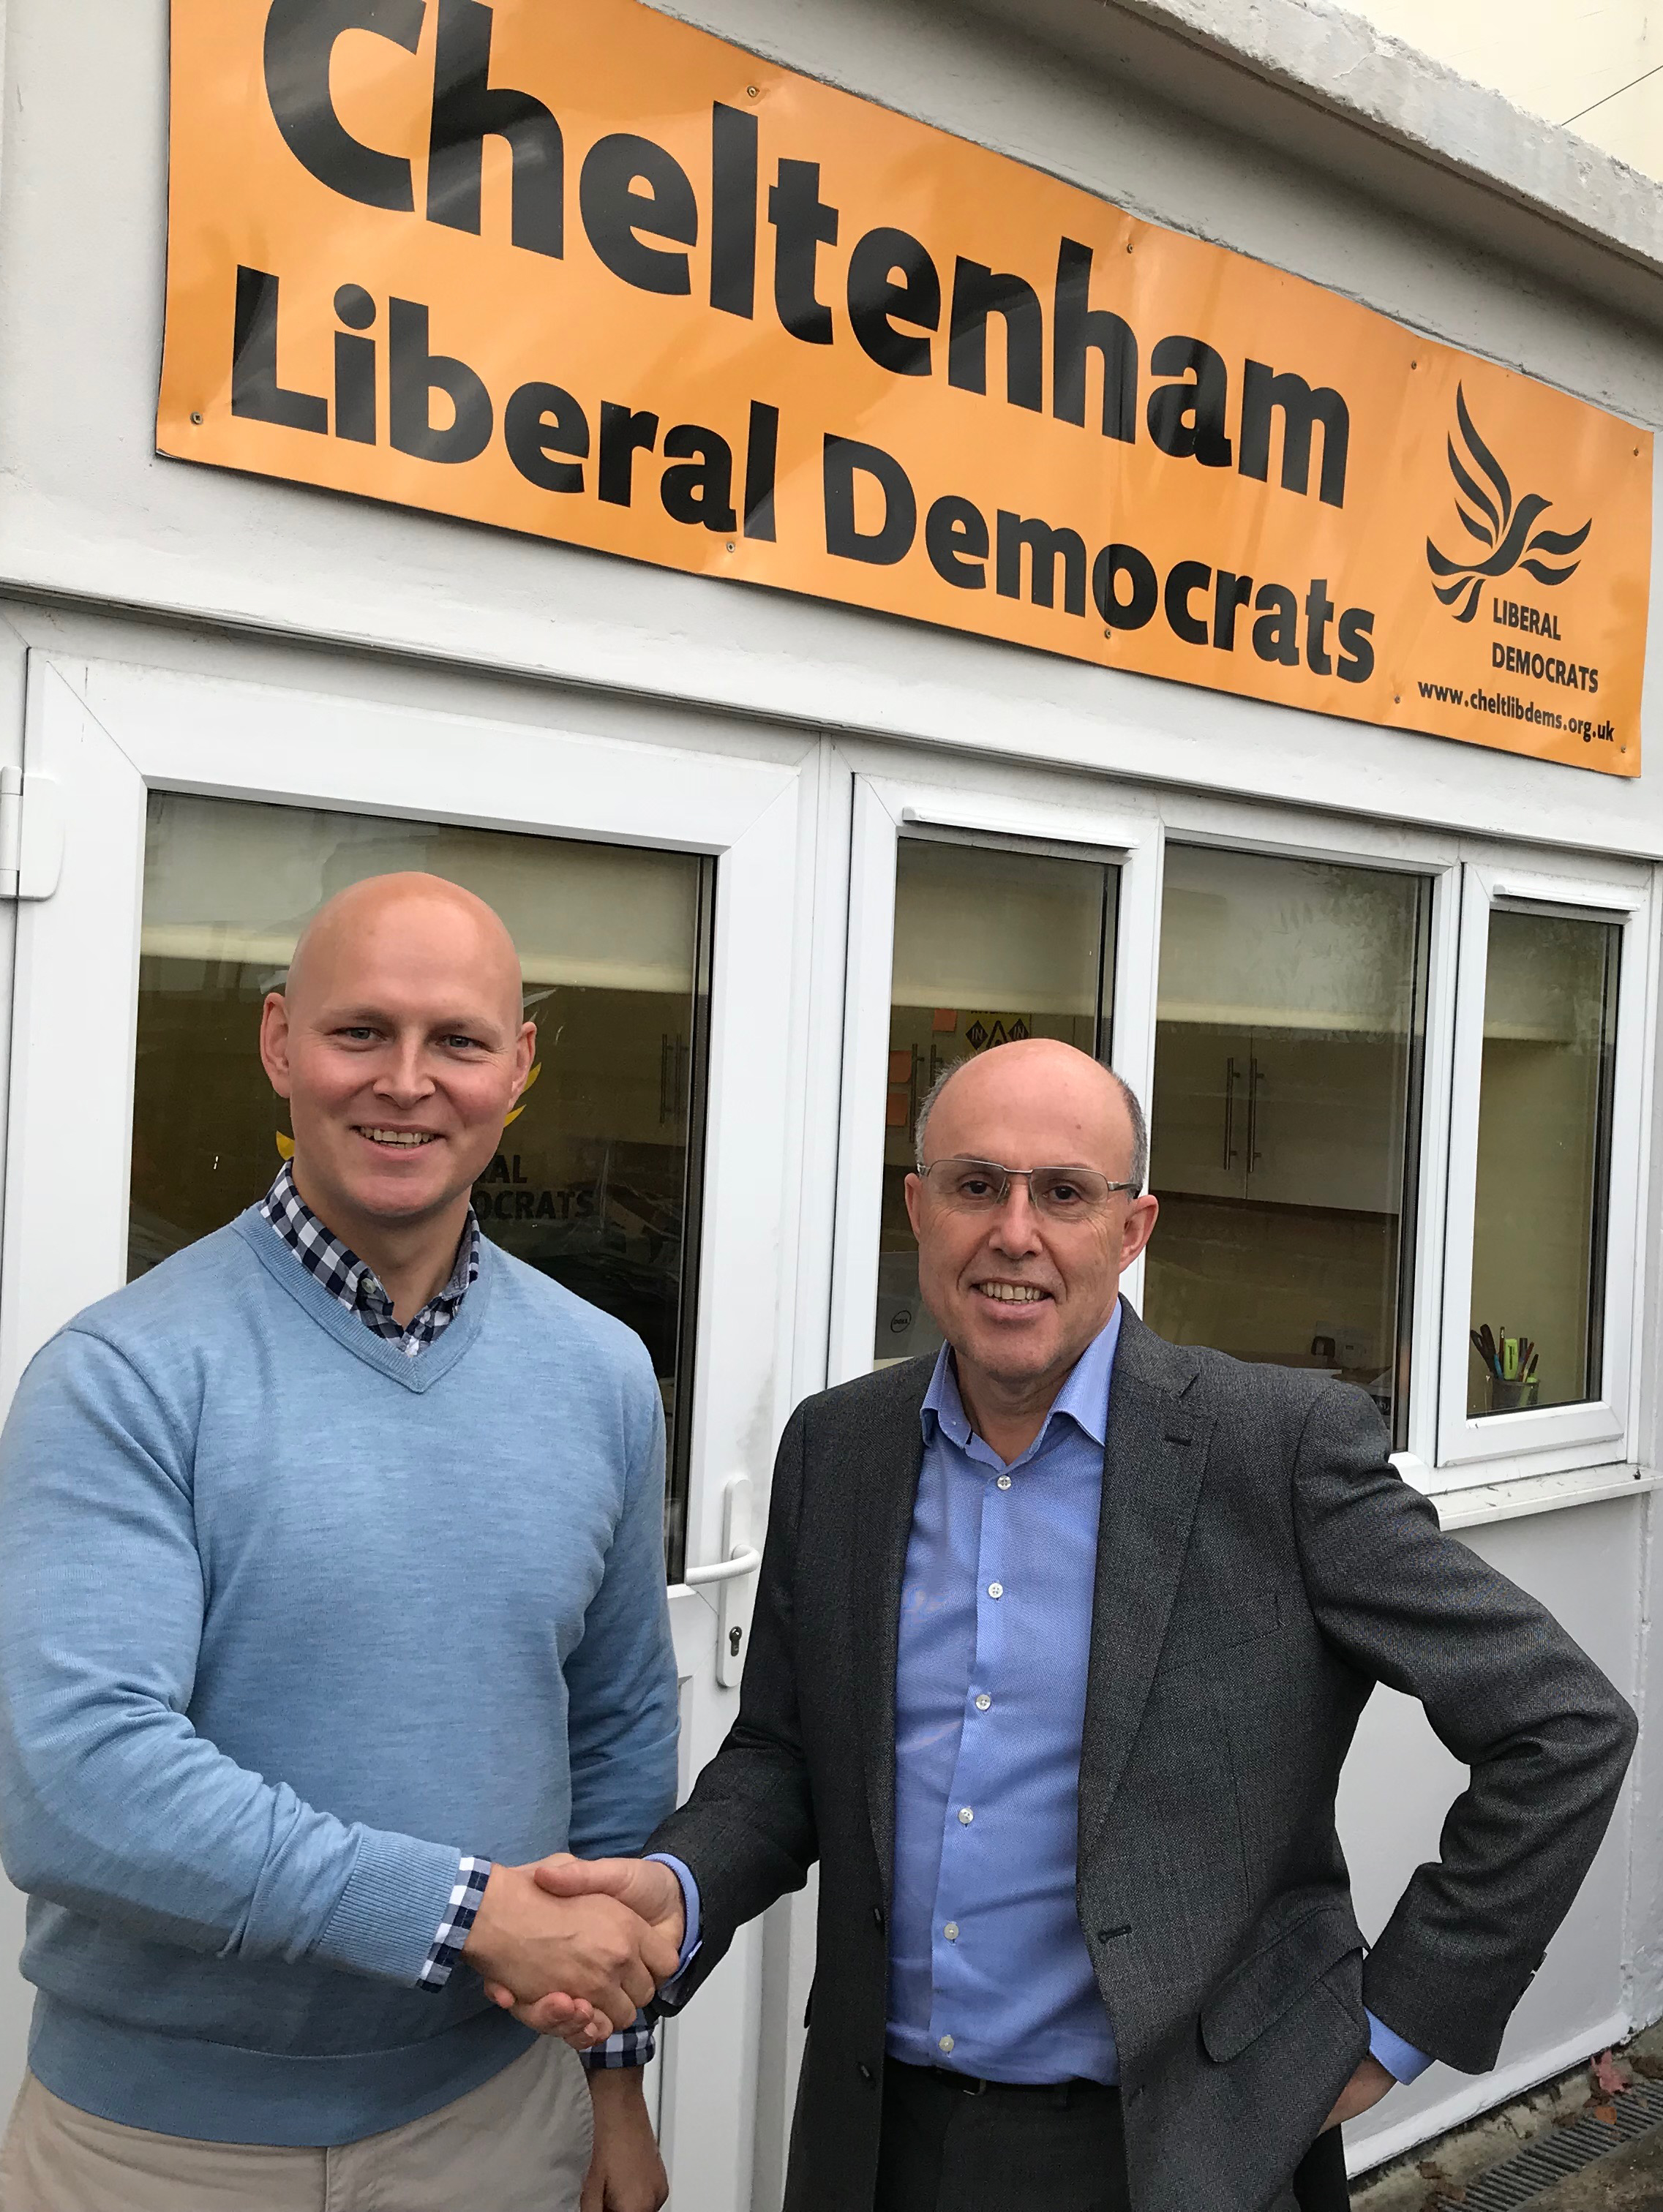 Paul Baker to spearhead Lib Dem promotion push